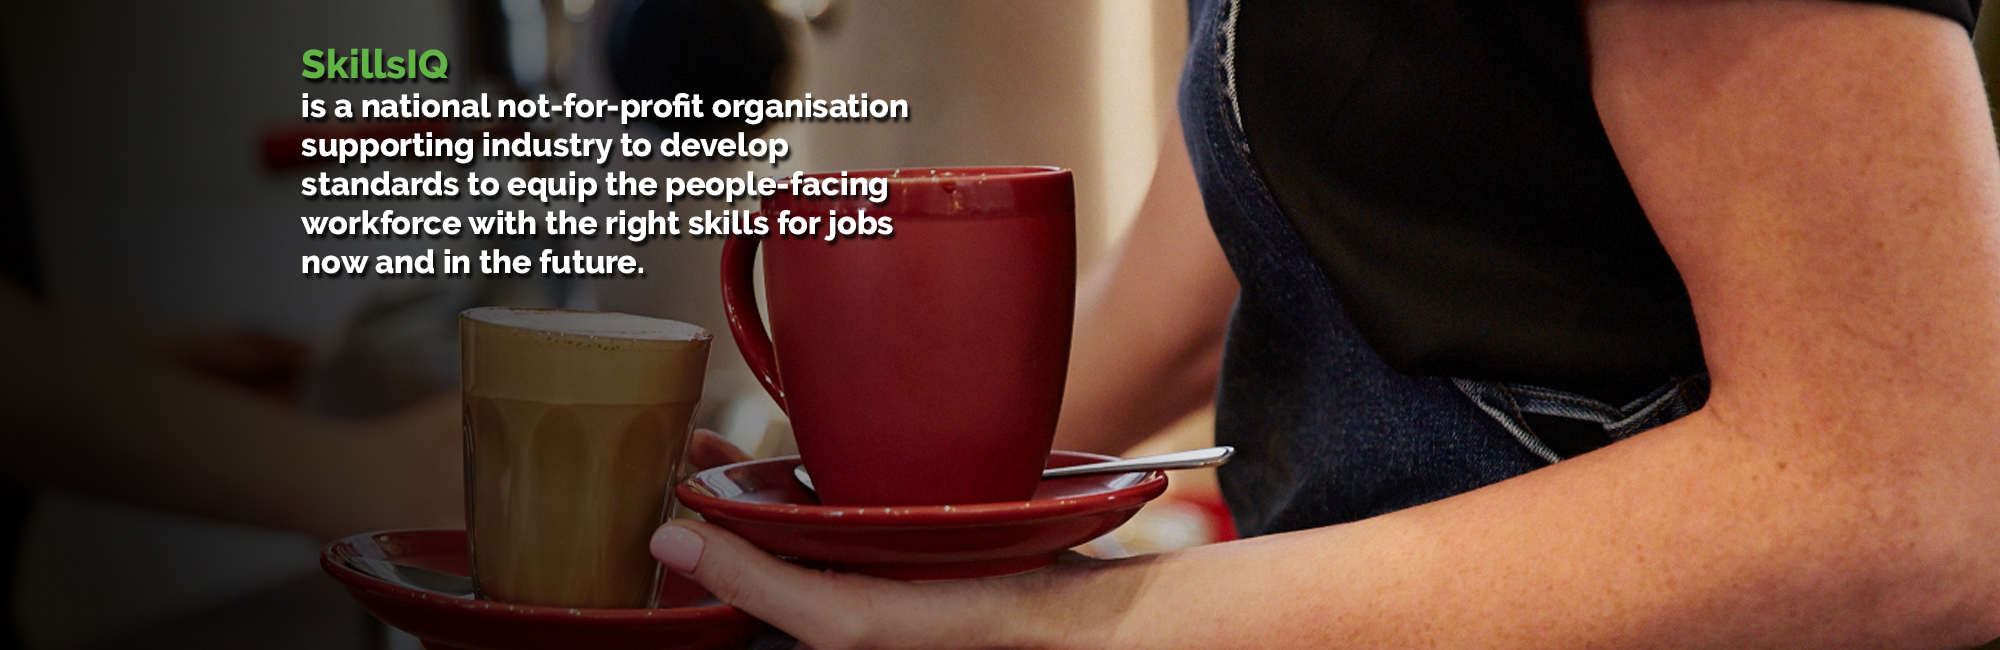 skillsiq skills service organisation skills iq is a not for profit independent organisation working to ensure that skills development and training products meet current and future needs in the